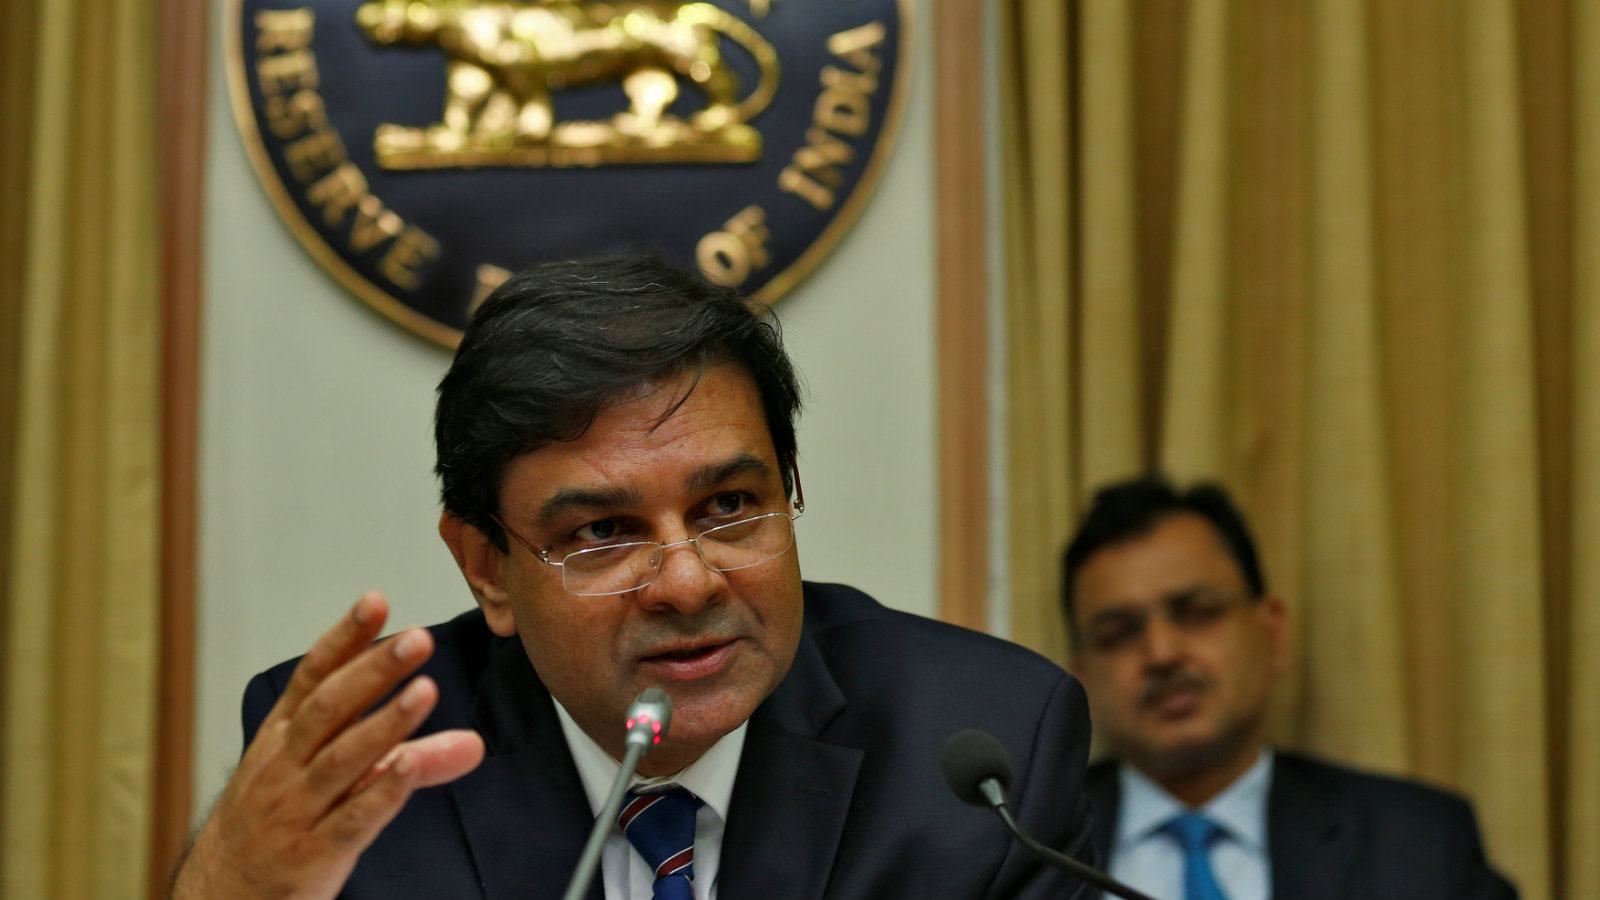 The Reserve Bank of India (RBI) Governor Urjit Patel attends a news conference after the bimonthly monetary policy review in Mumbai, India December 7, 2016.